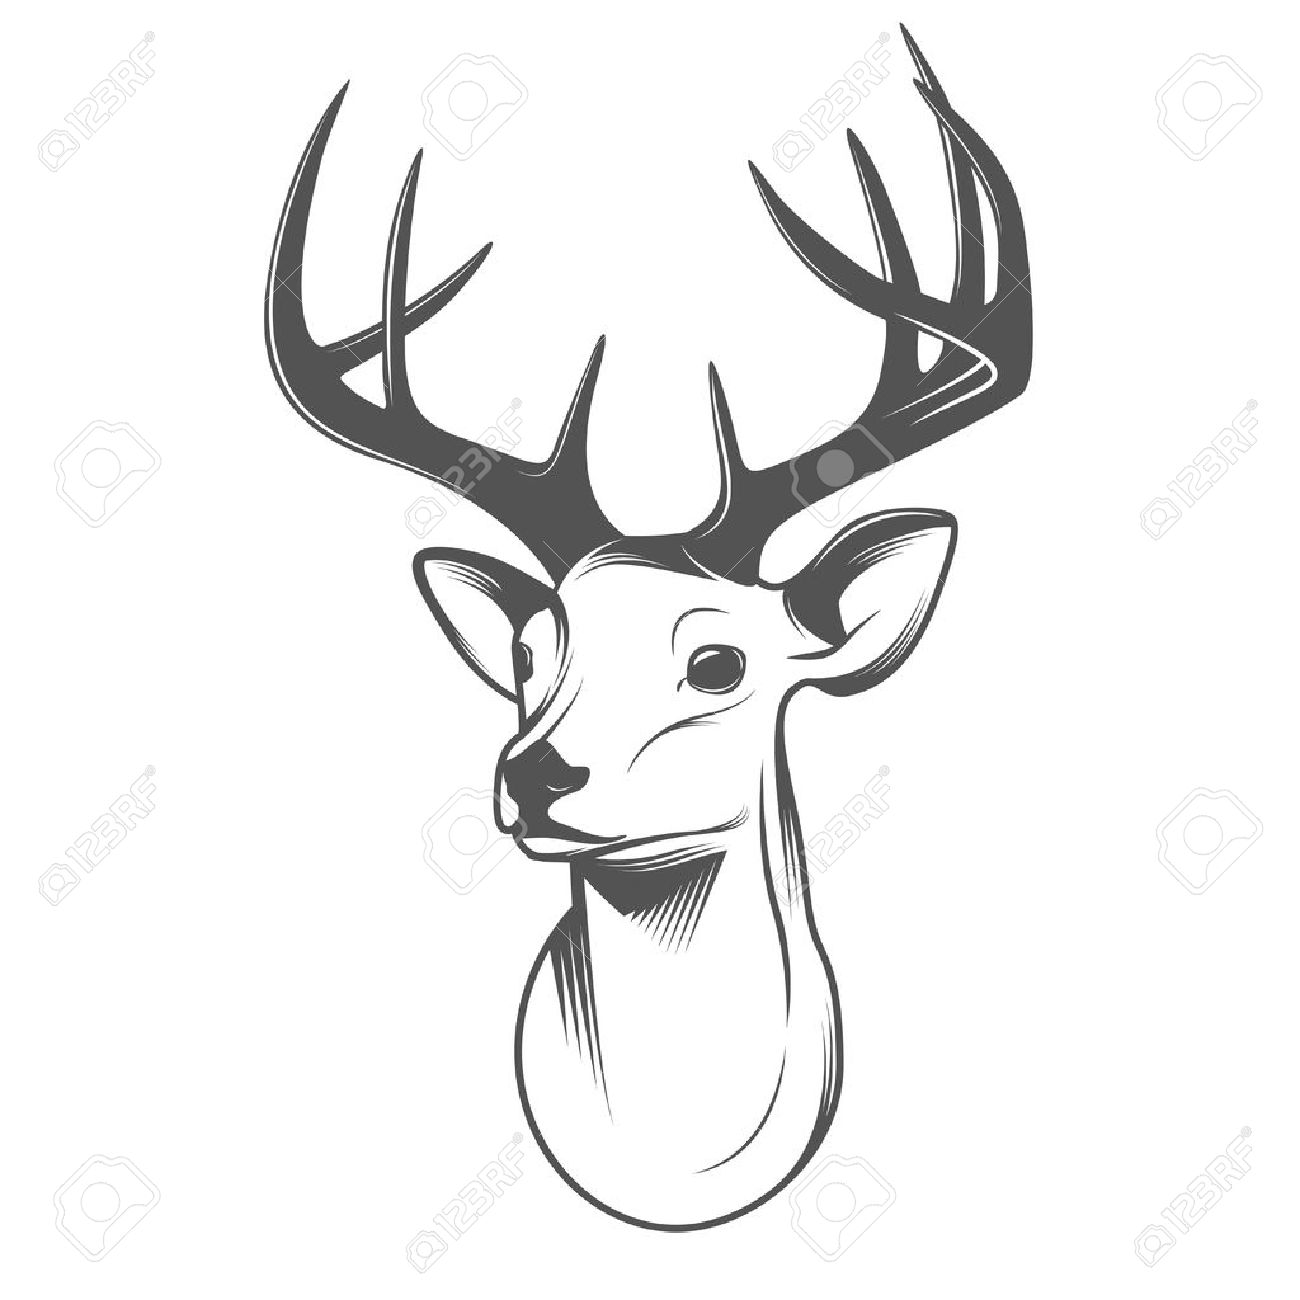 Deer head isolated on white background - 19457203